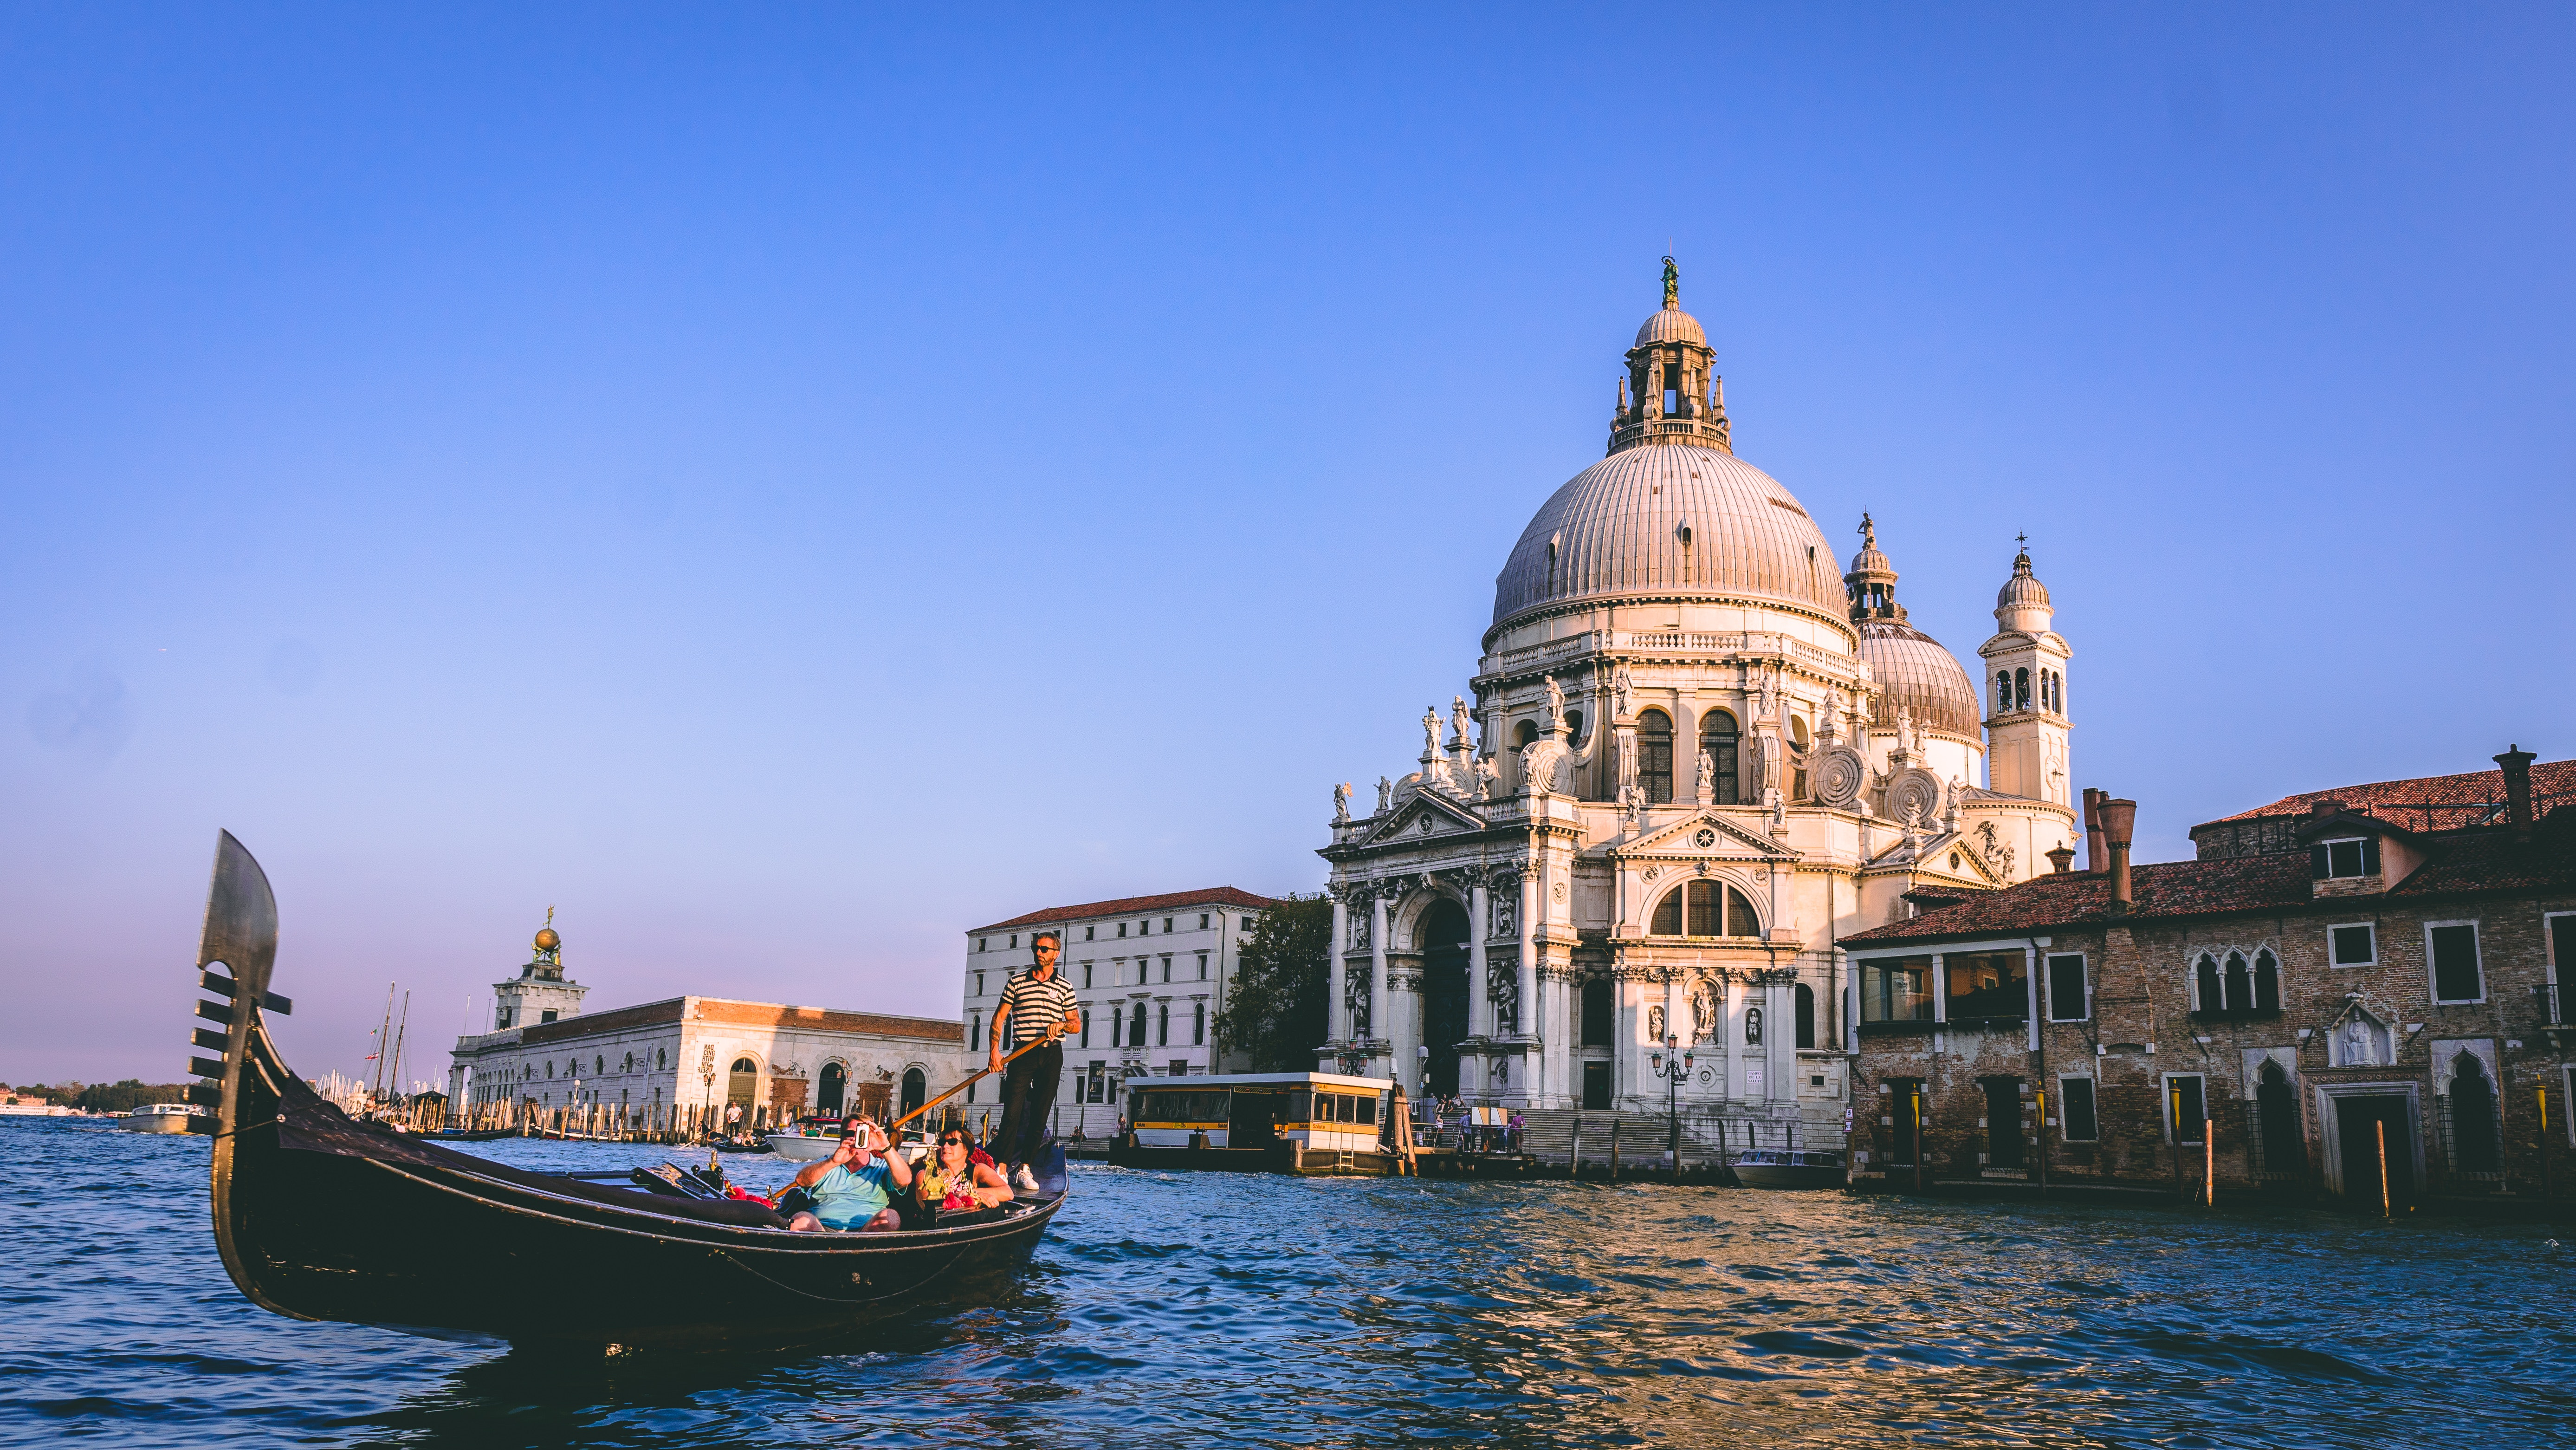 The new project that celebrates the city of Venice